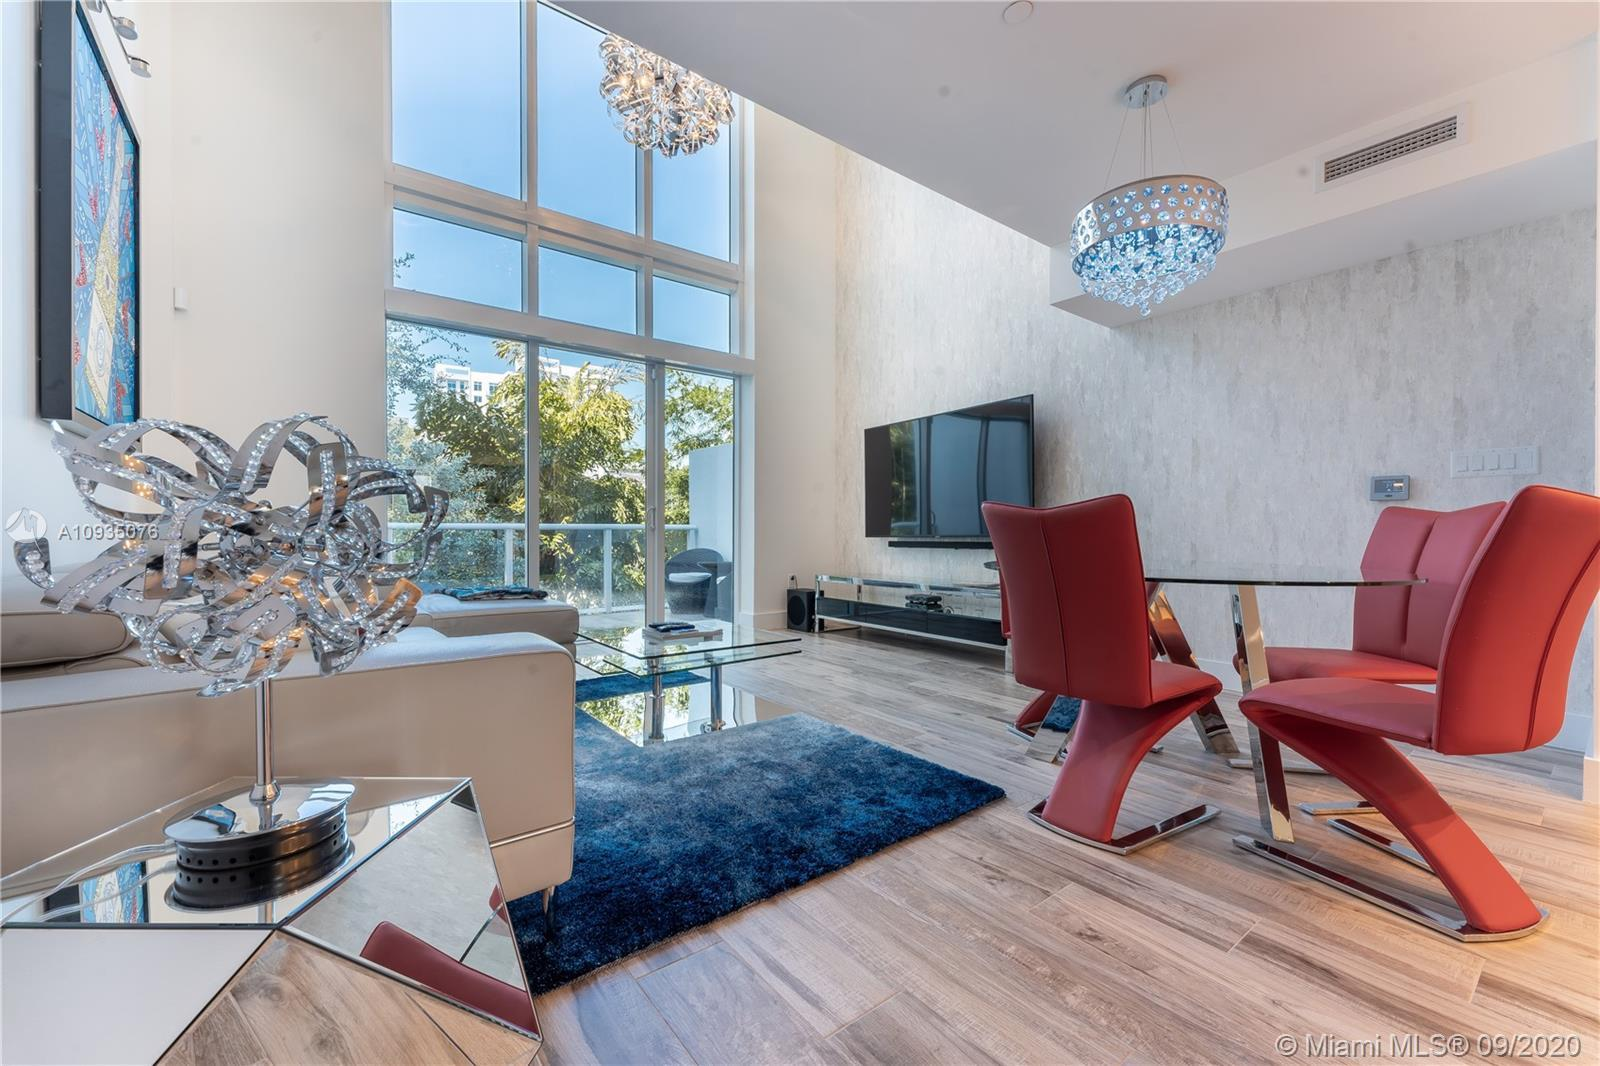 Located in an ultra-exclusive gated luxury modern townhome community nestled between the Design Dist